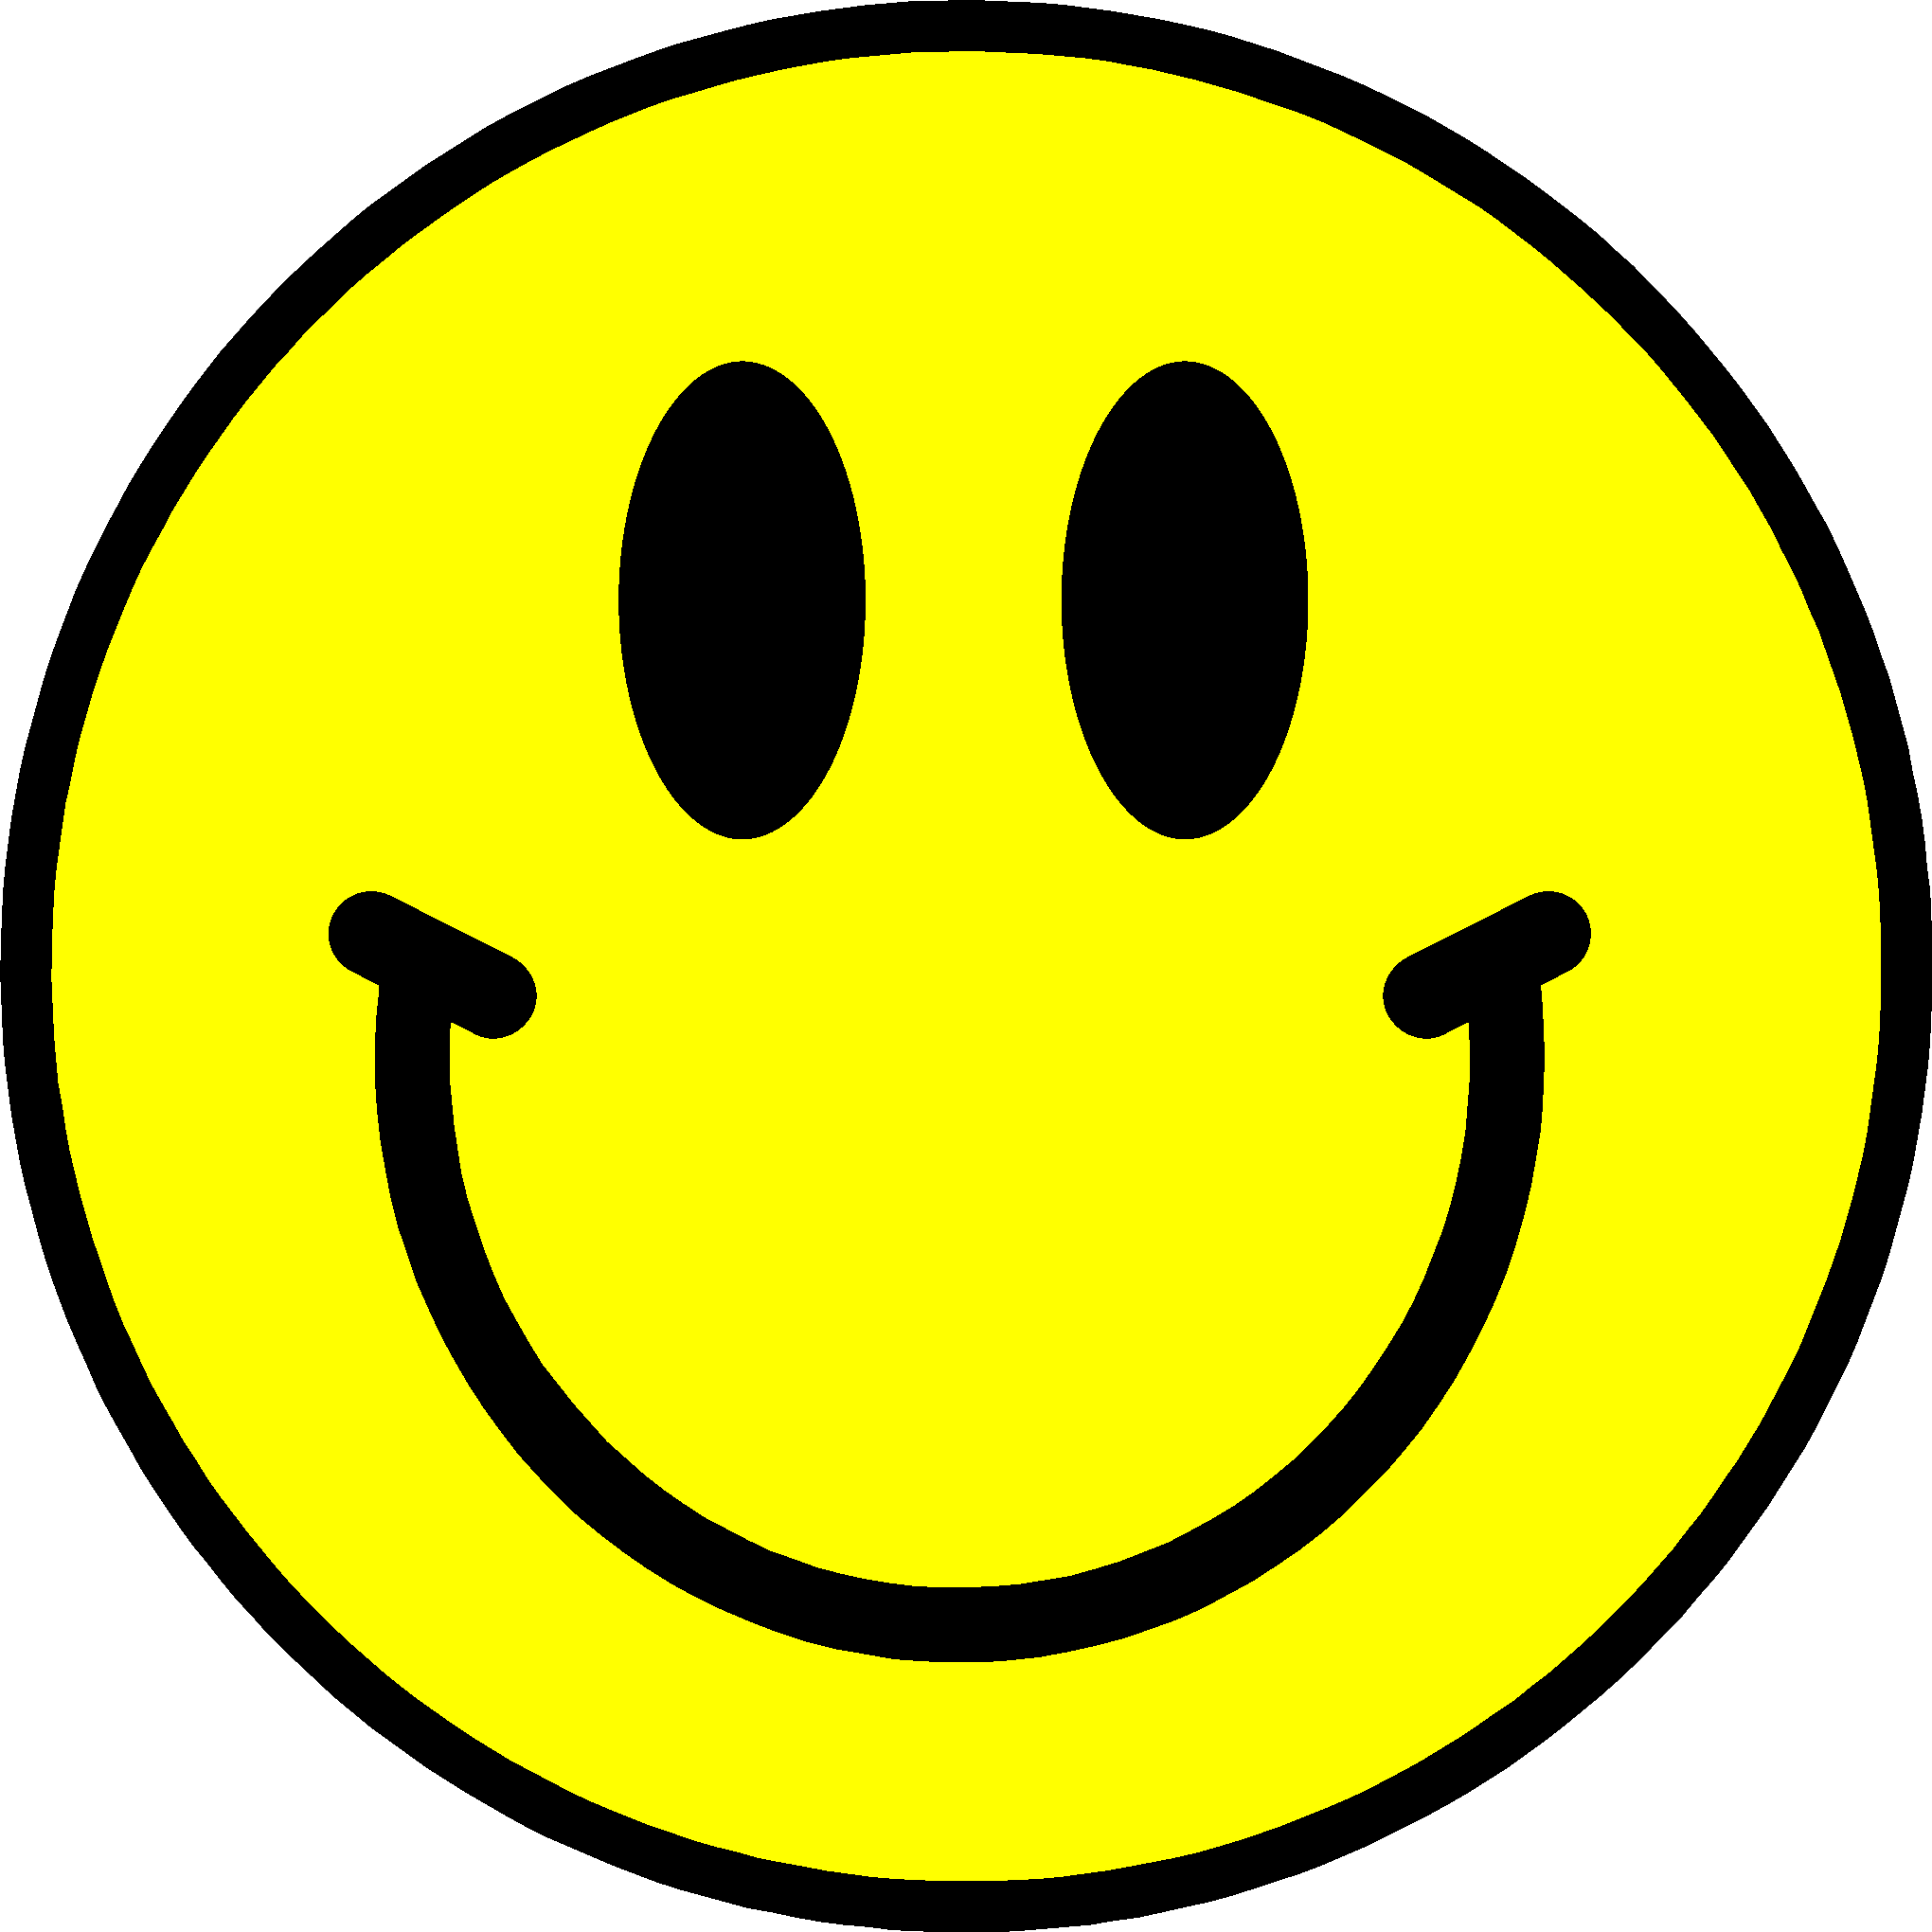 smiley PNG images free download.